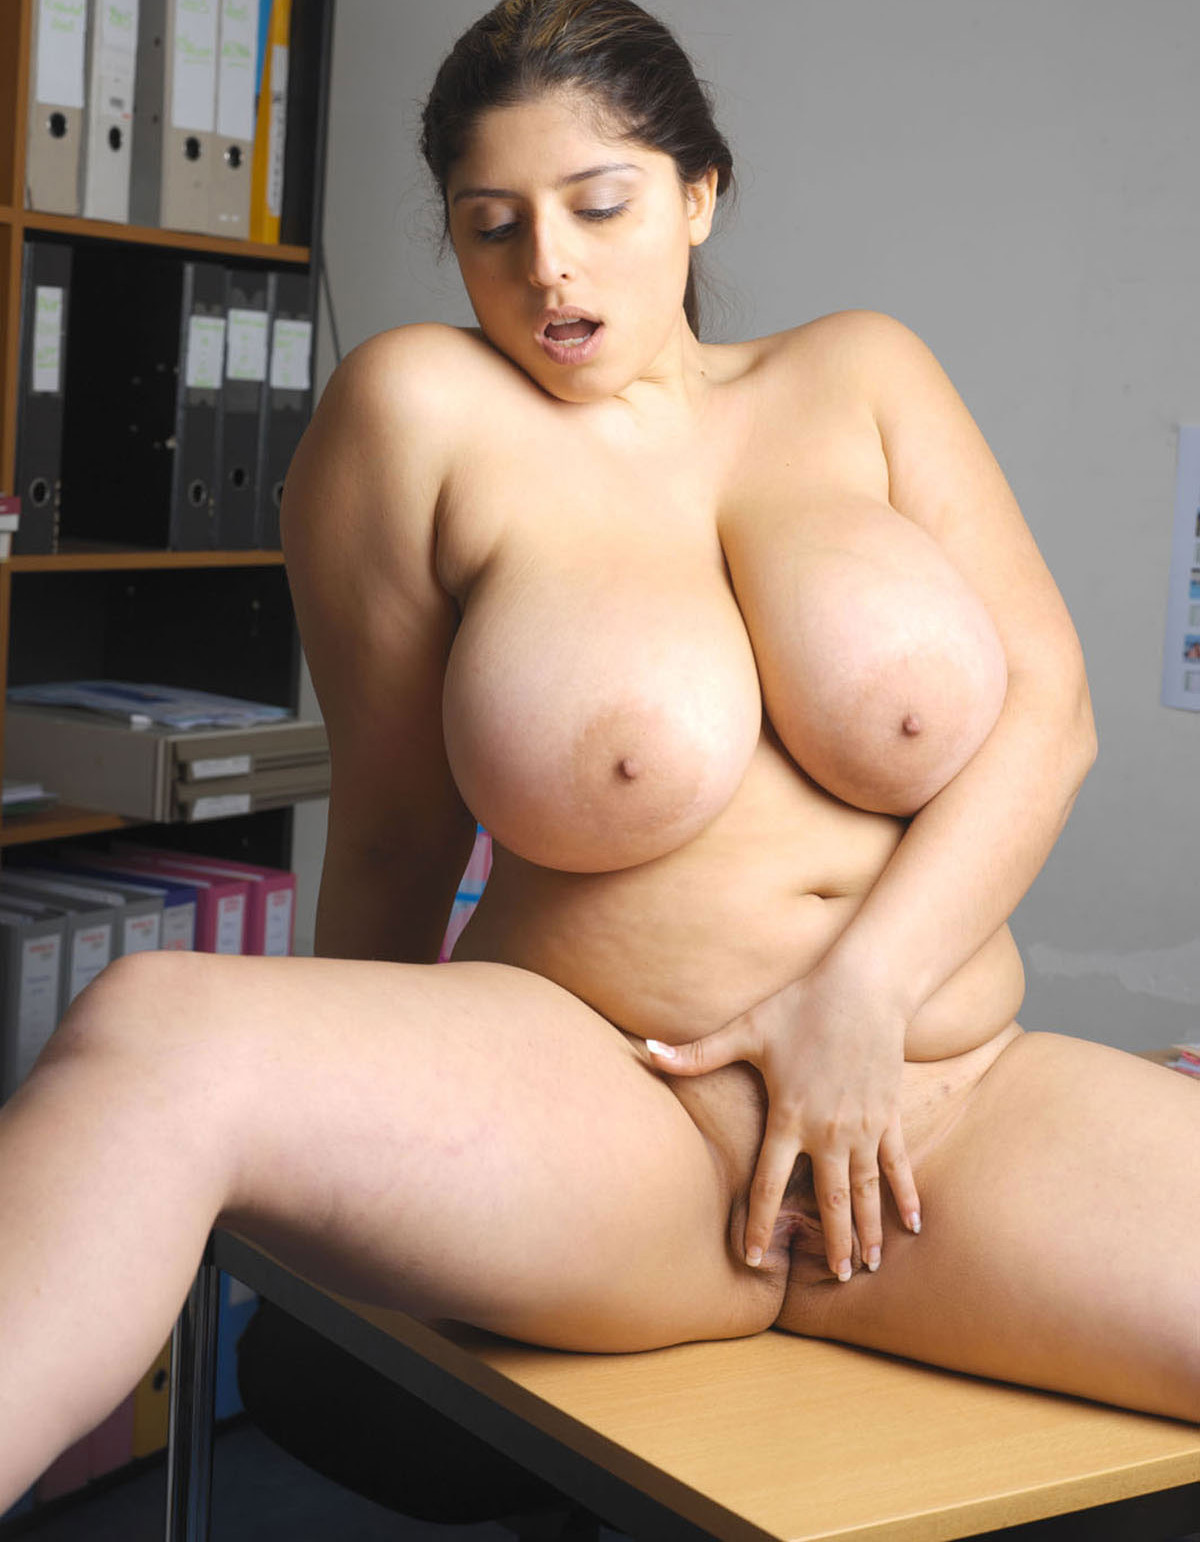 Gorgeous chubby redhead shows off big tits and fat ass 3